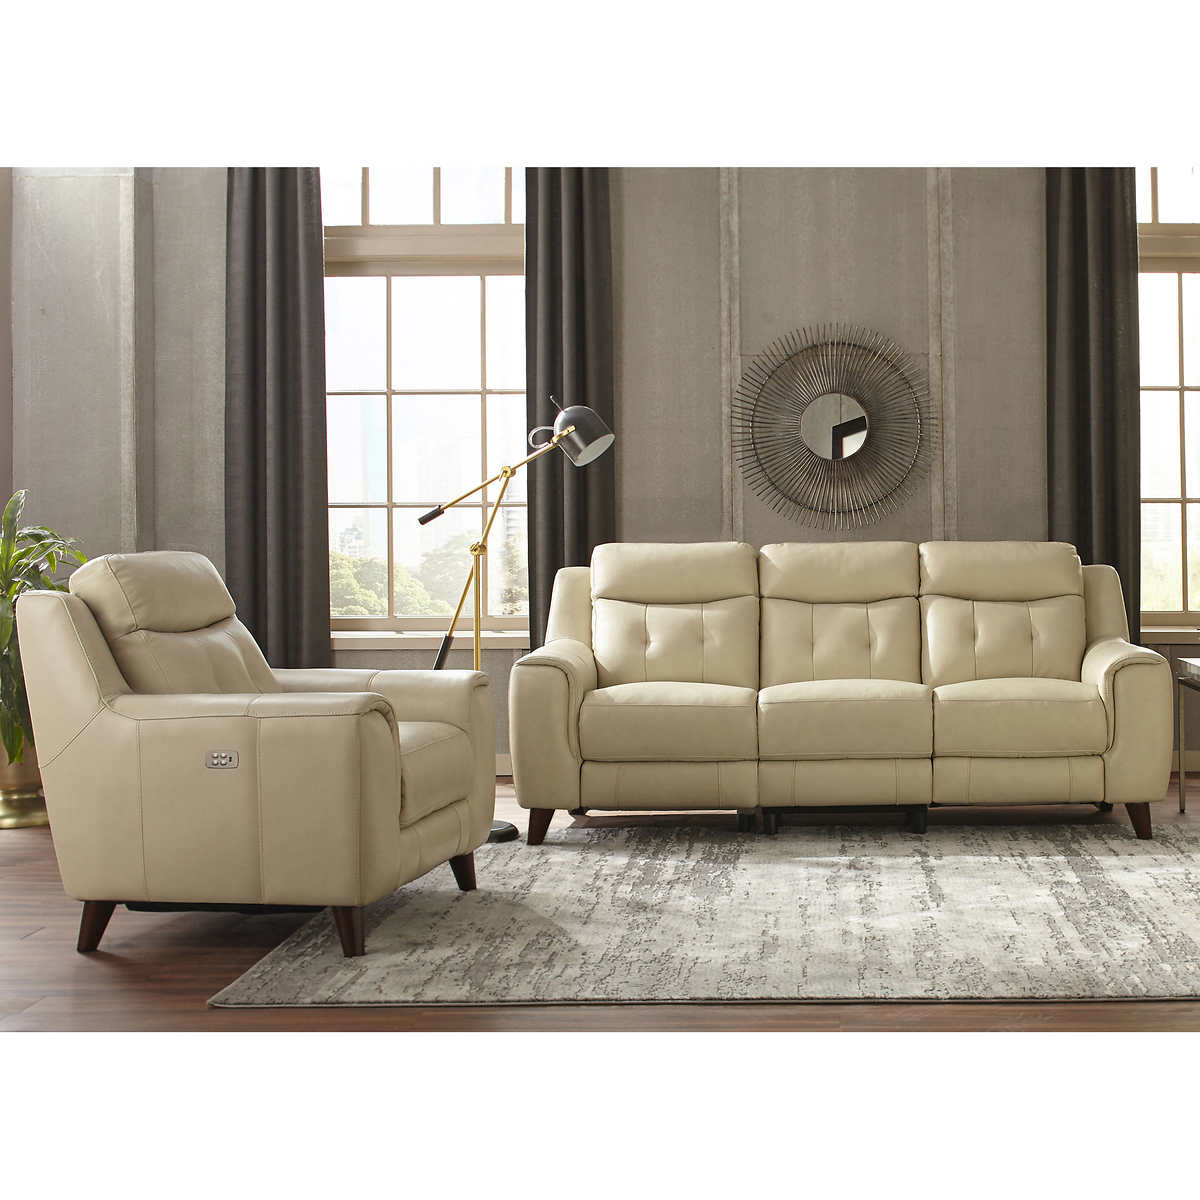 Campania 2-piece Top Grain Leather Power Reclining Set with Power Headrests  - Sofa, Recliner